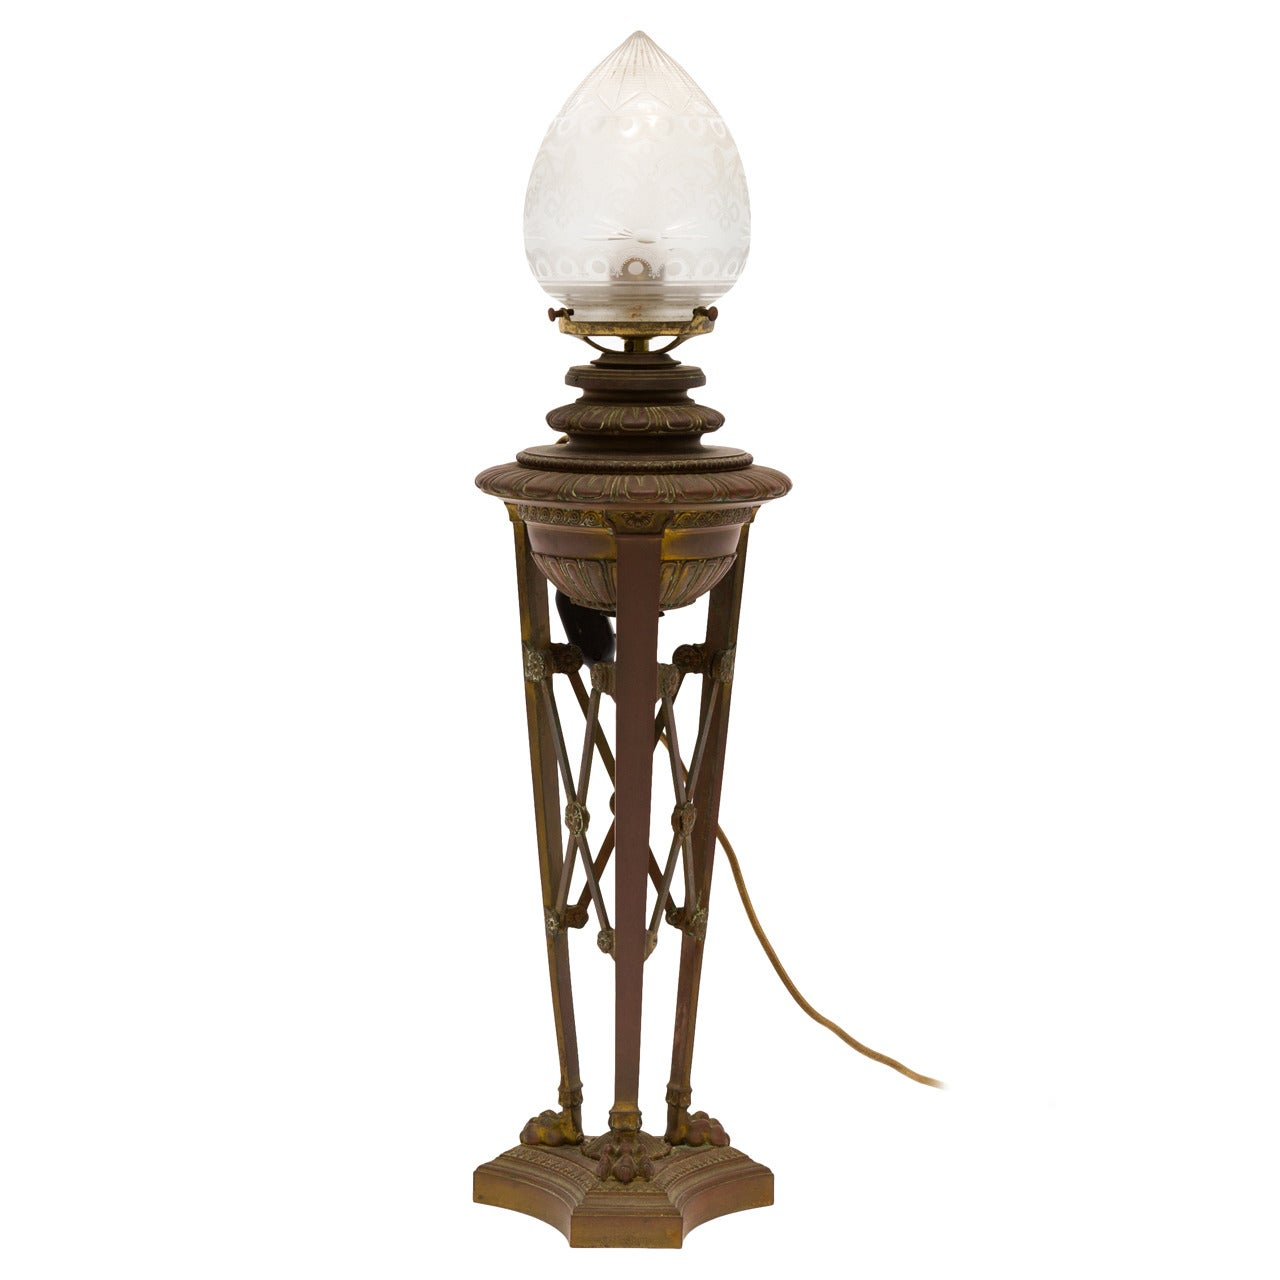 French Bronze 19th Century Converted Oil Lamp